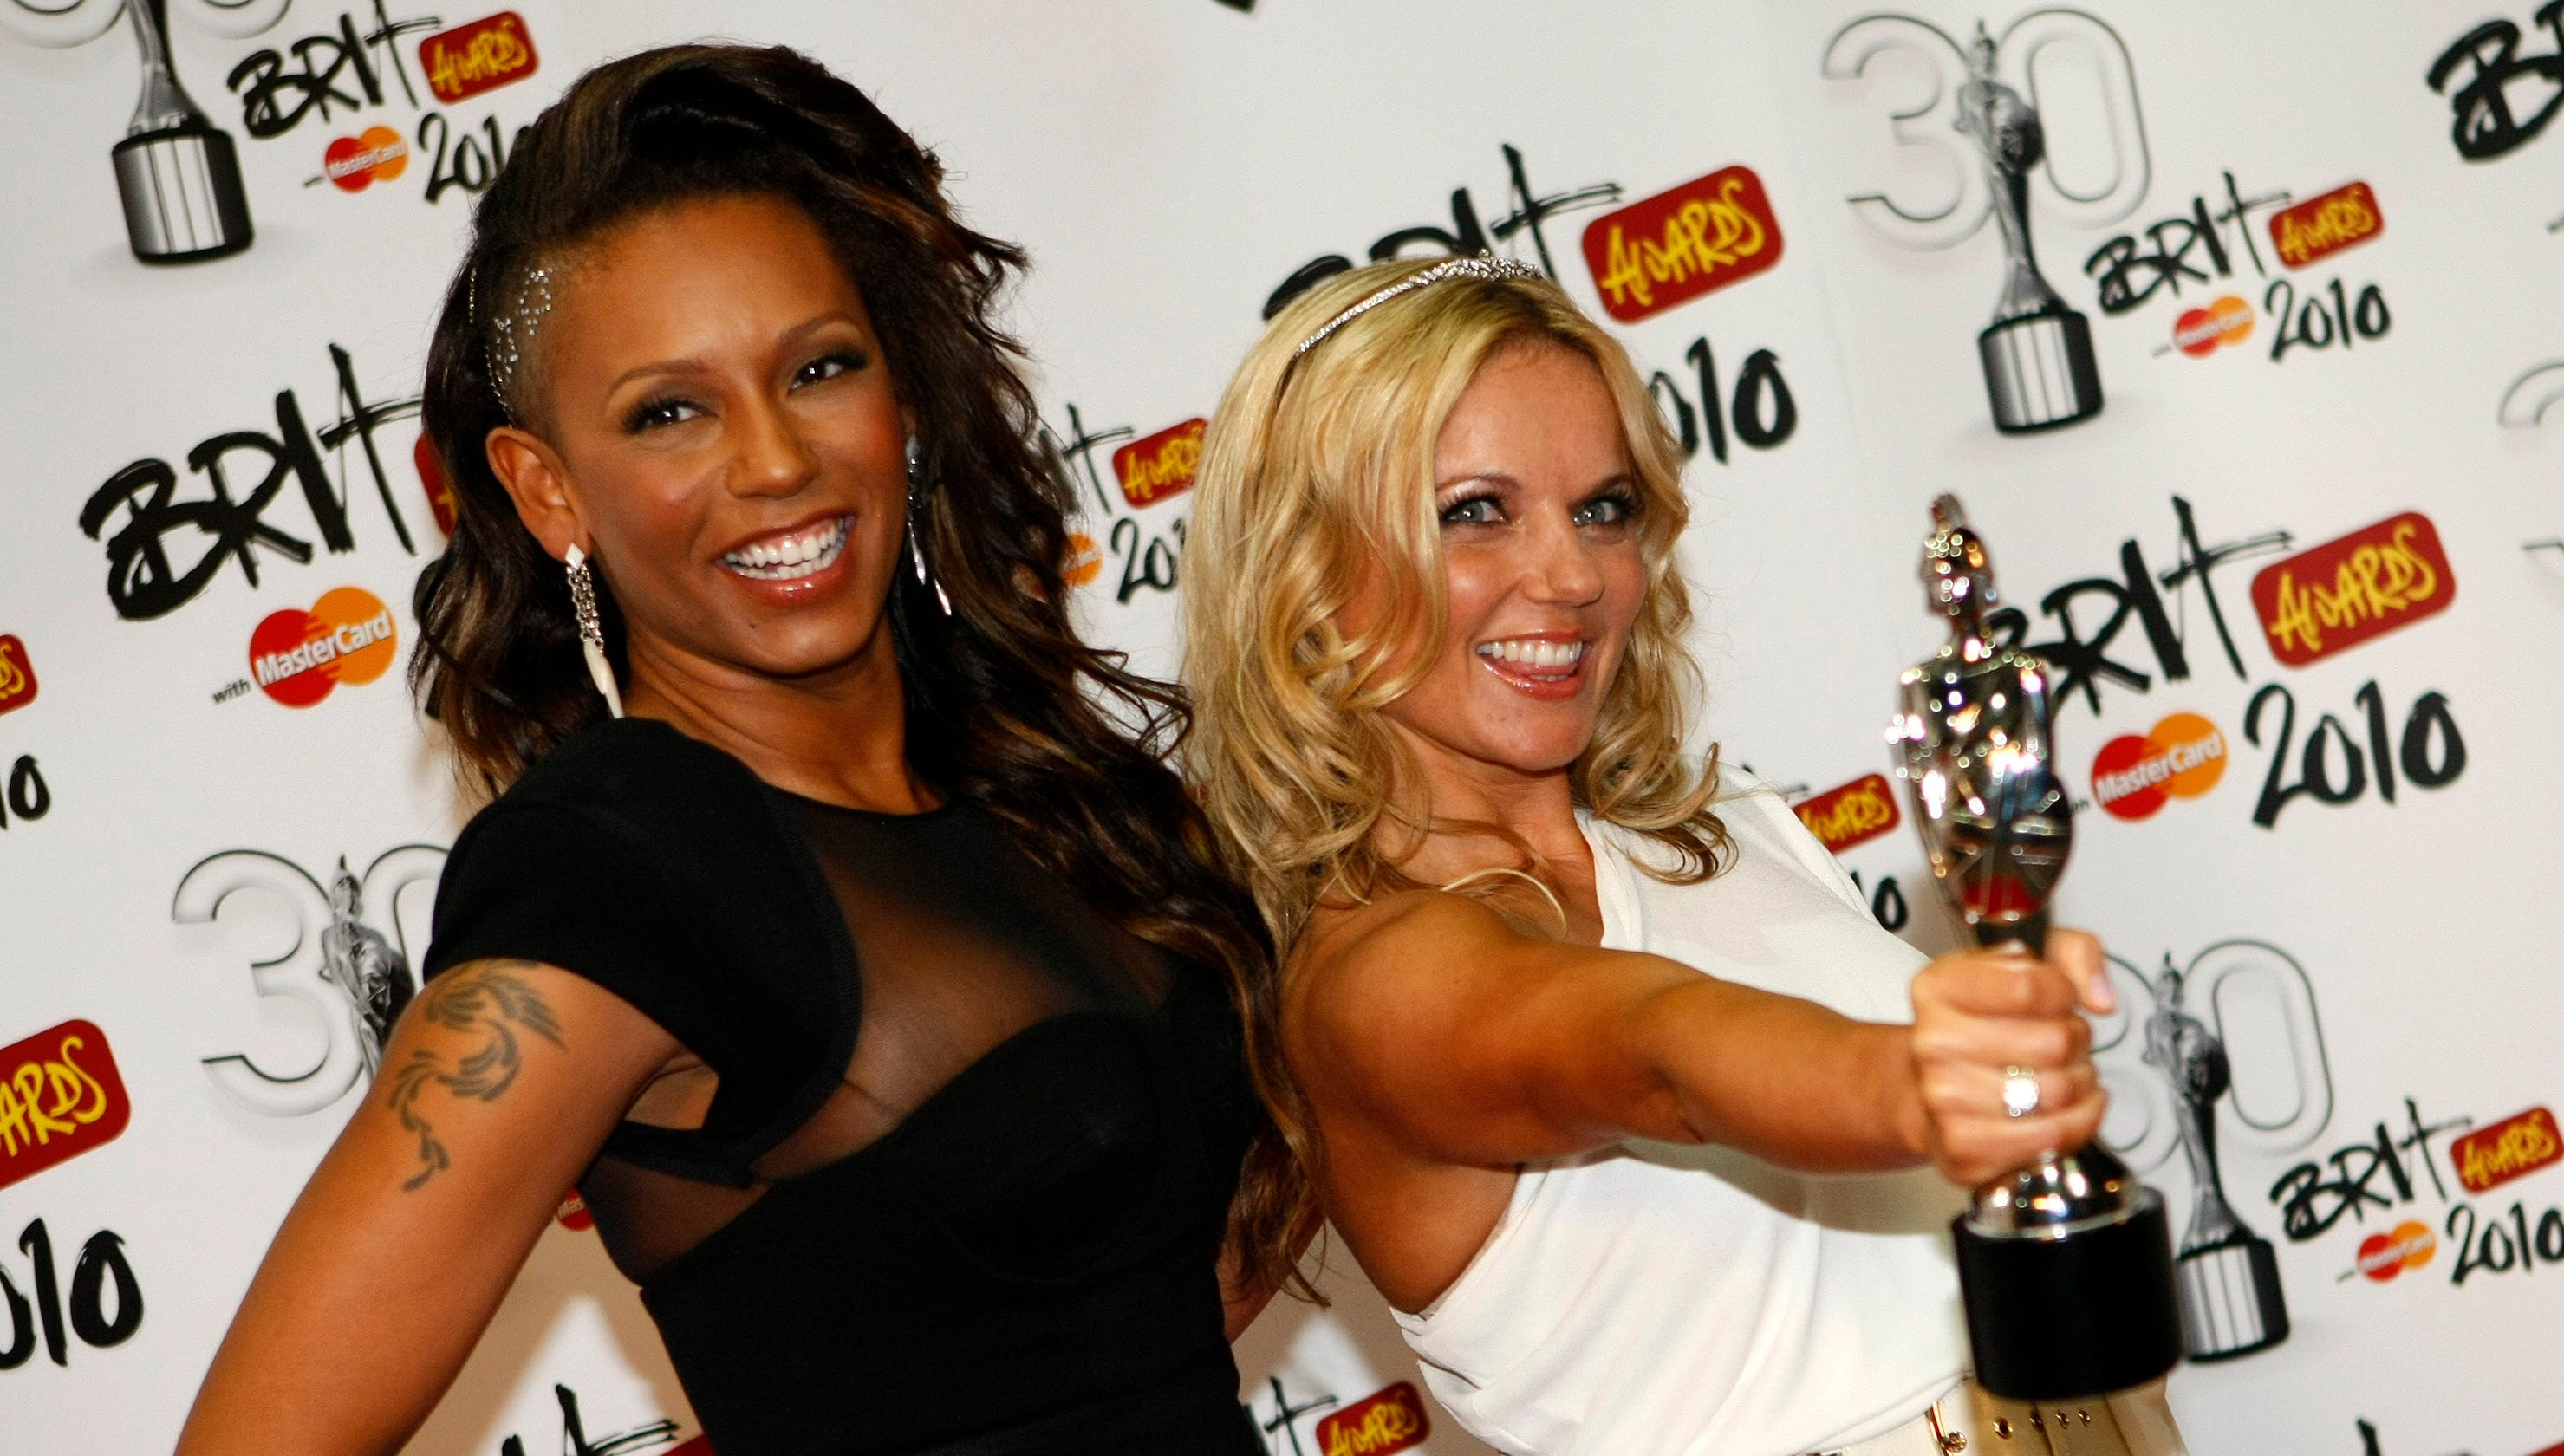 Spice Girls' Mel B plays down tryst and post-interview phone call with Geri Halliwell